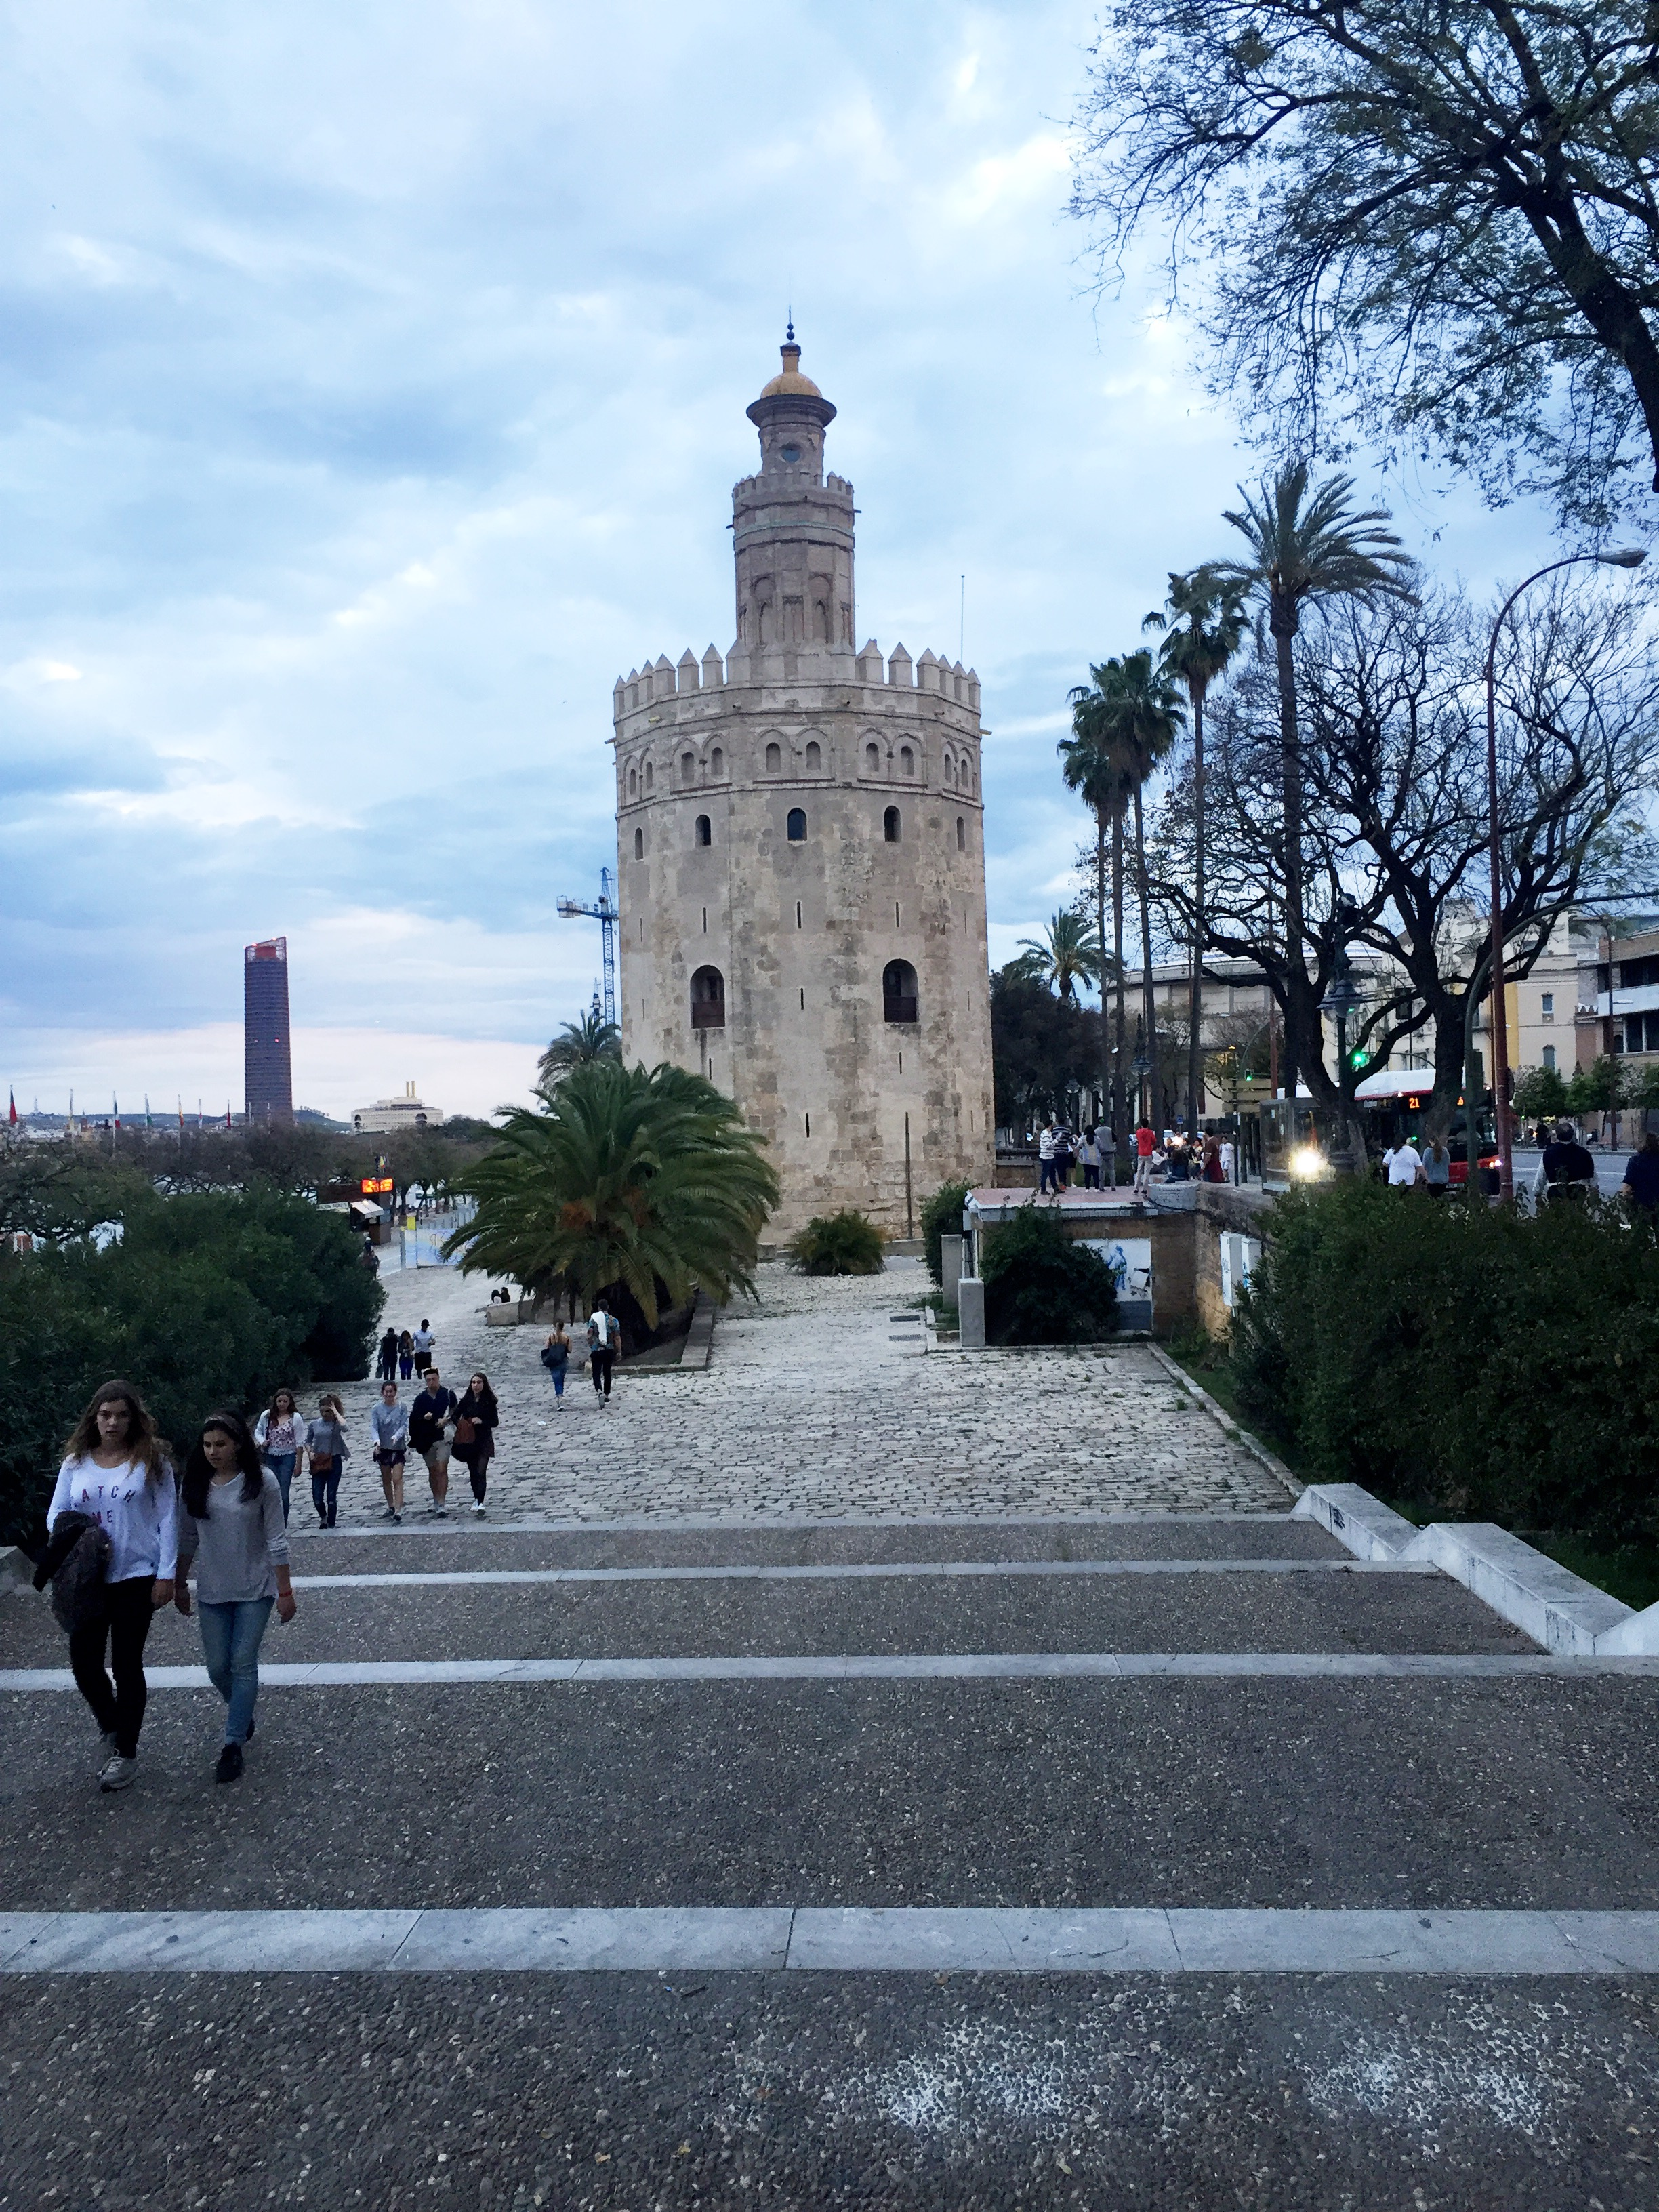 Torre Del Oro. Seville's defensive tower that doubled up as a prison from the 13th century